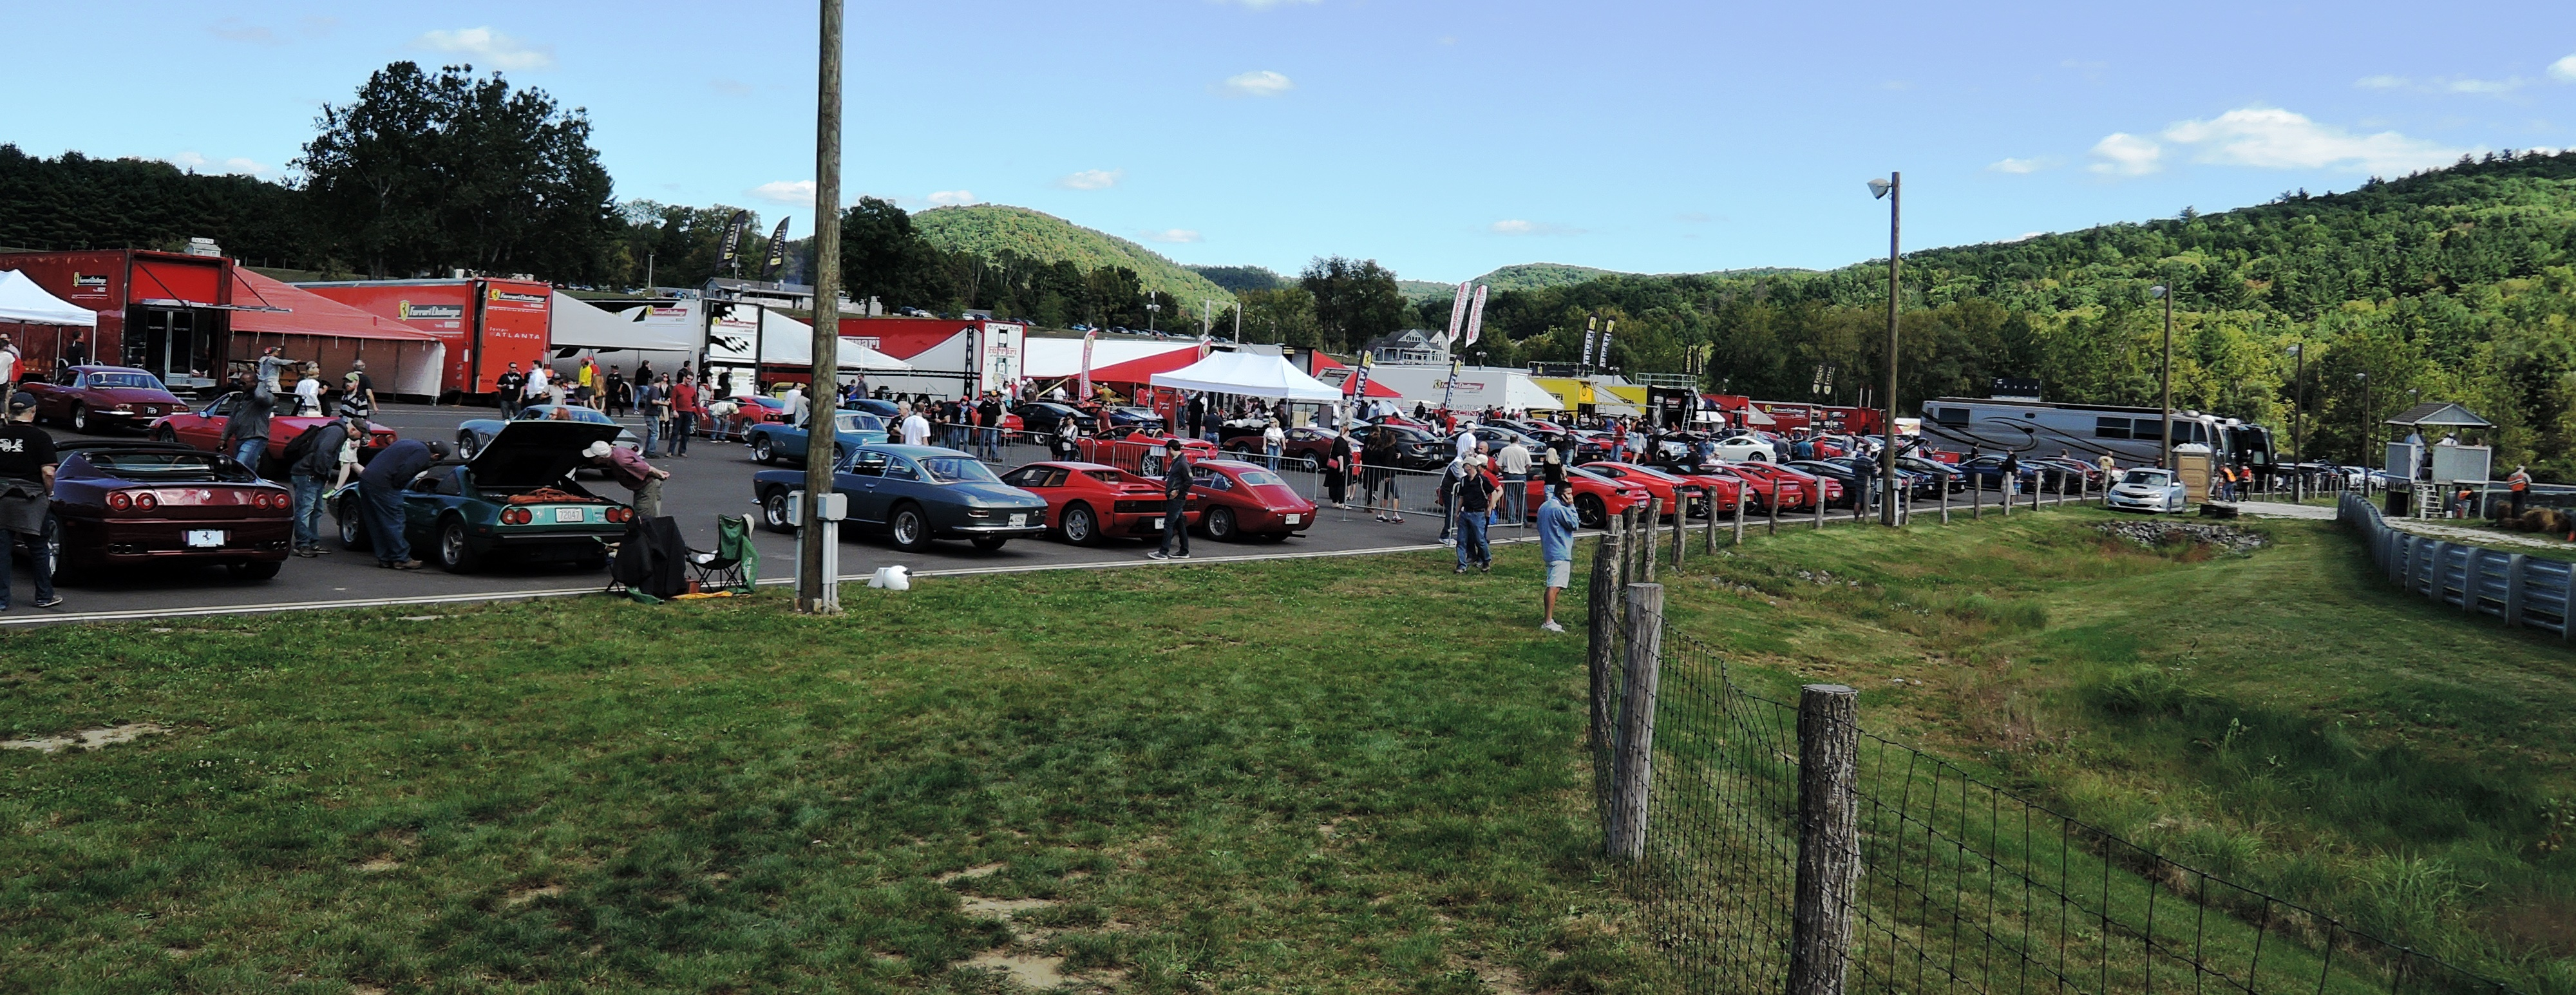 vintage corral at Ferrari Challenge at LRP